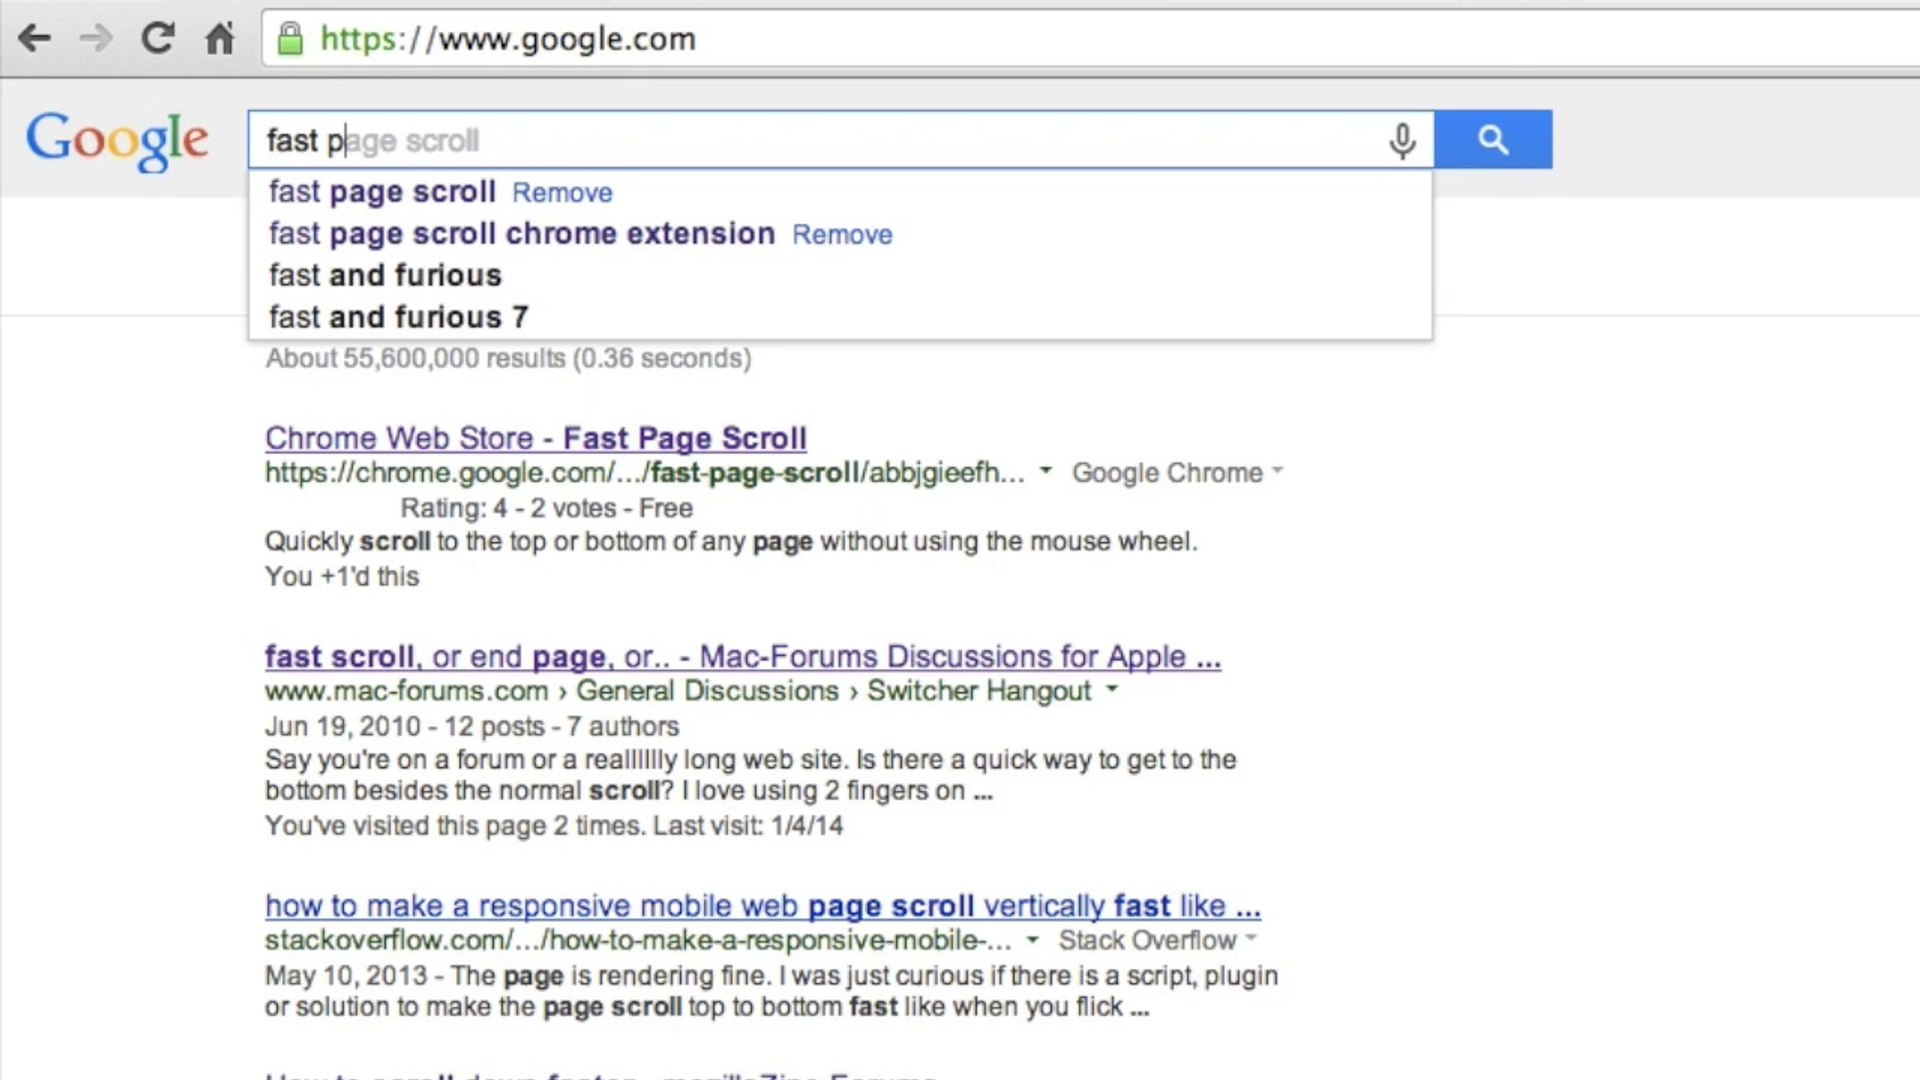 Fast Page Scroll